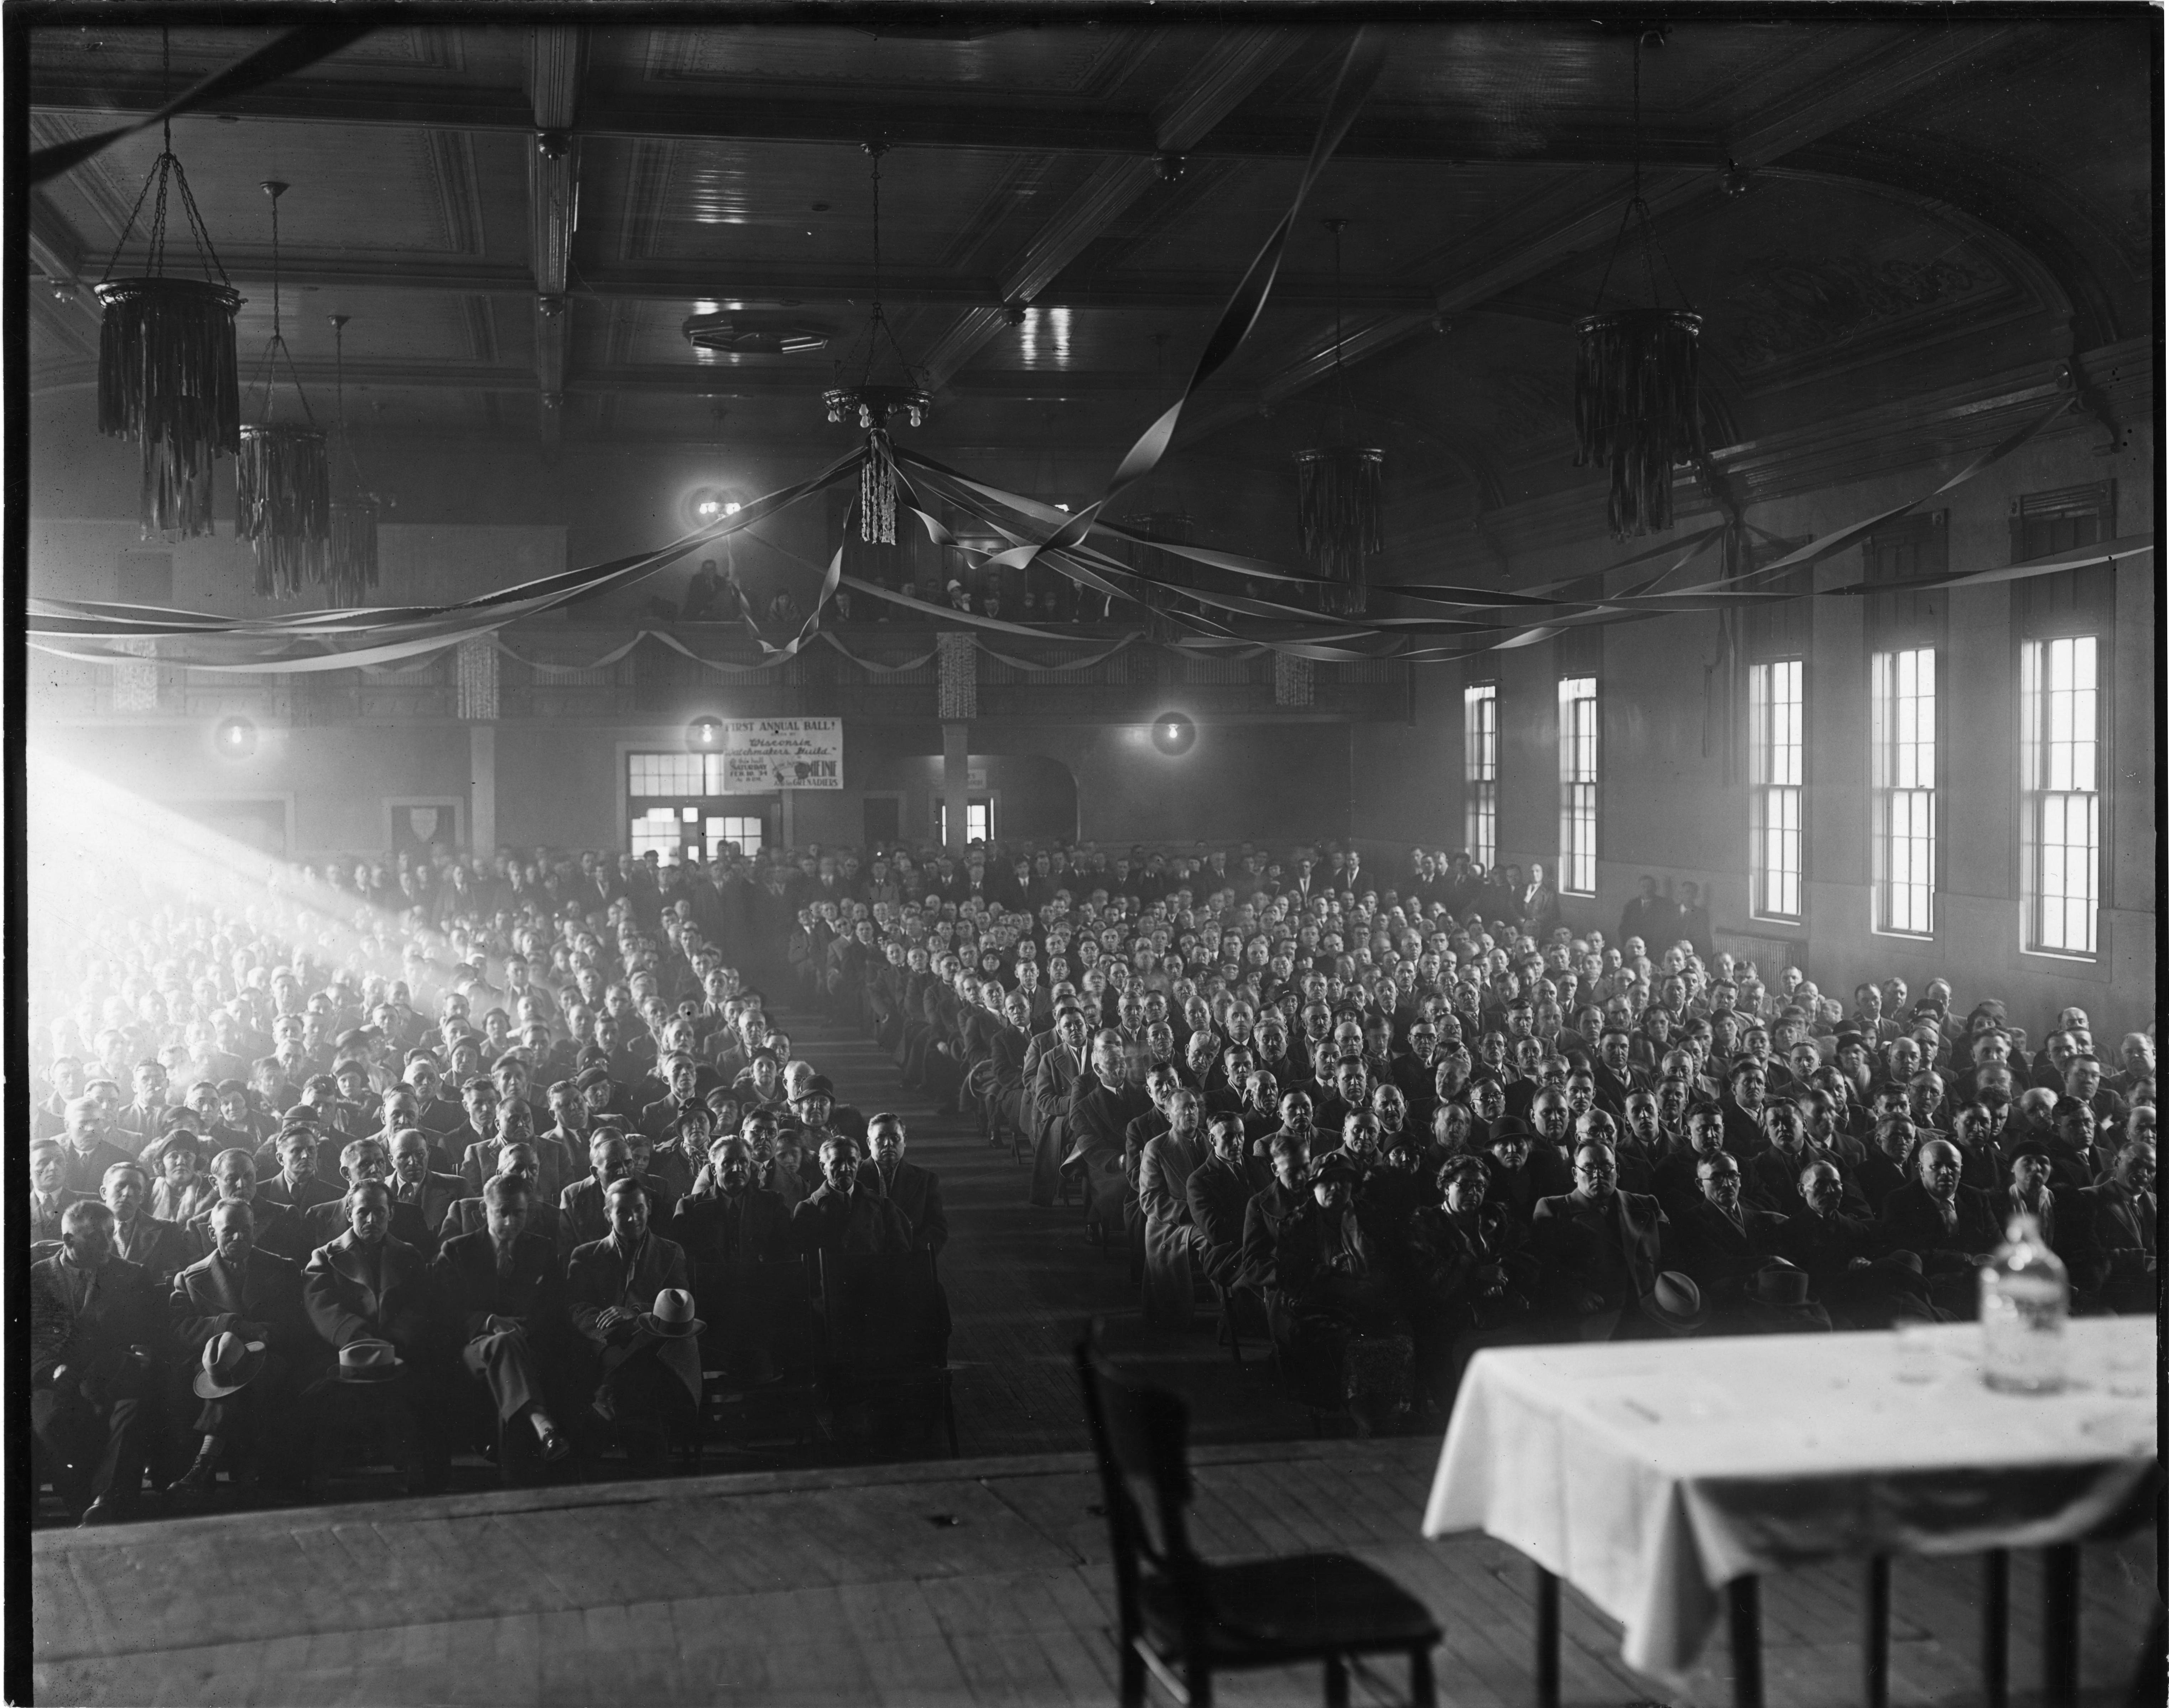 <table class=&quot;lightbox&quot;><tr><td colspan=2 class=&quot;lightbox-title&quot;>Labor Union Meeting</td></tr><tr><td colspan=2 class=&quot;lightbox-caption&quot;>The South Side Amory Hall is filled with individuals attending a labor union meeting in the early 1930s.</td></tr><tr><td colspan=2 class=&quot;lightbox-spacer&quot;></td></tr><tr class=&quot;lightbox-detail&quot;><td class=&quot;cell-title&quot;>Source: </td><td class=&quot;cell-value&quot;>From the Roman B. Kwaniewski Photographs Collection, Archives. University of Wisconsin-Milwaukee Libraries. <br /><a href=&quot;https://collections.lib.uwm.edu/digital/collection/mke-polonia/id/34707/rec/1&quot; target=&quot;_blank&quot;>University of Wisconsin-Milwaukee Libraries</a></td></tr><tr class=&quot;filler-row&quot;><td colspan=2>&nbsp;</td></tr></table>